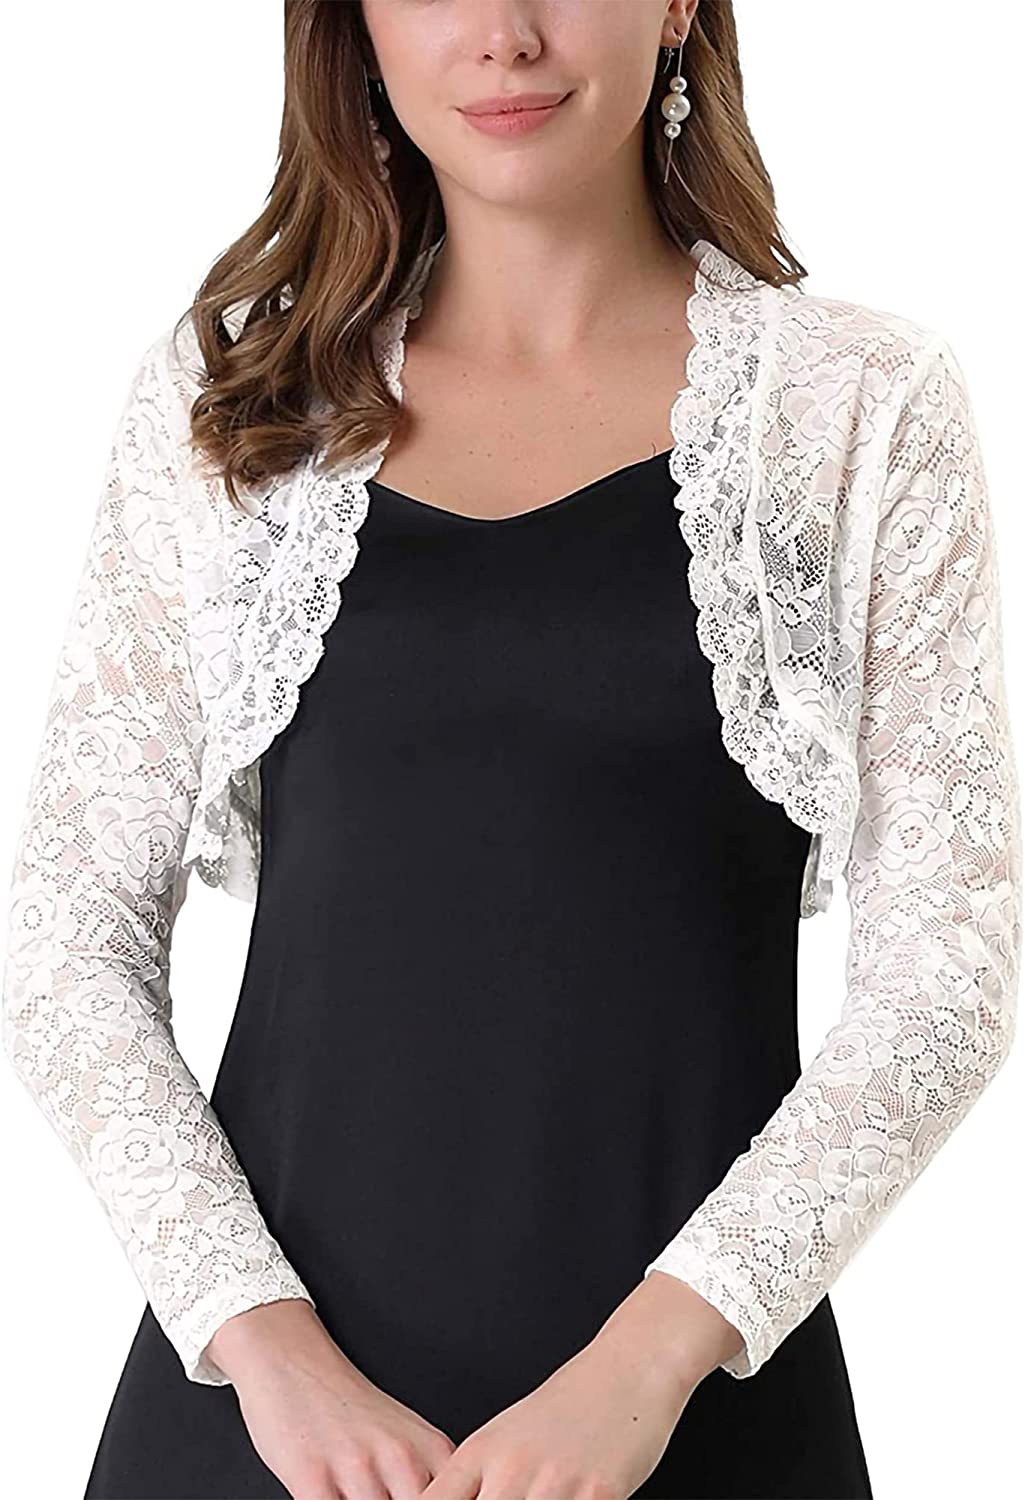 Women's Casual Lace Crochet Cardigan Solid Color Short Sleeve Sheer Bolero Cover Up (White2, X-Large)